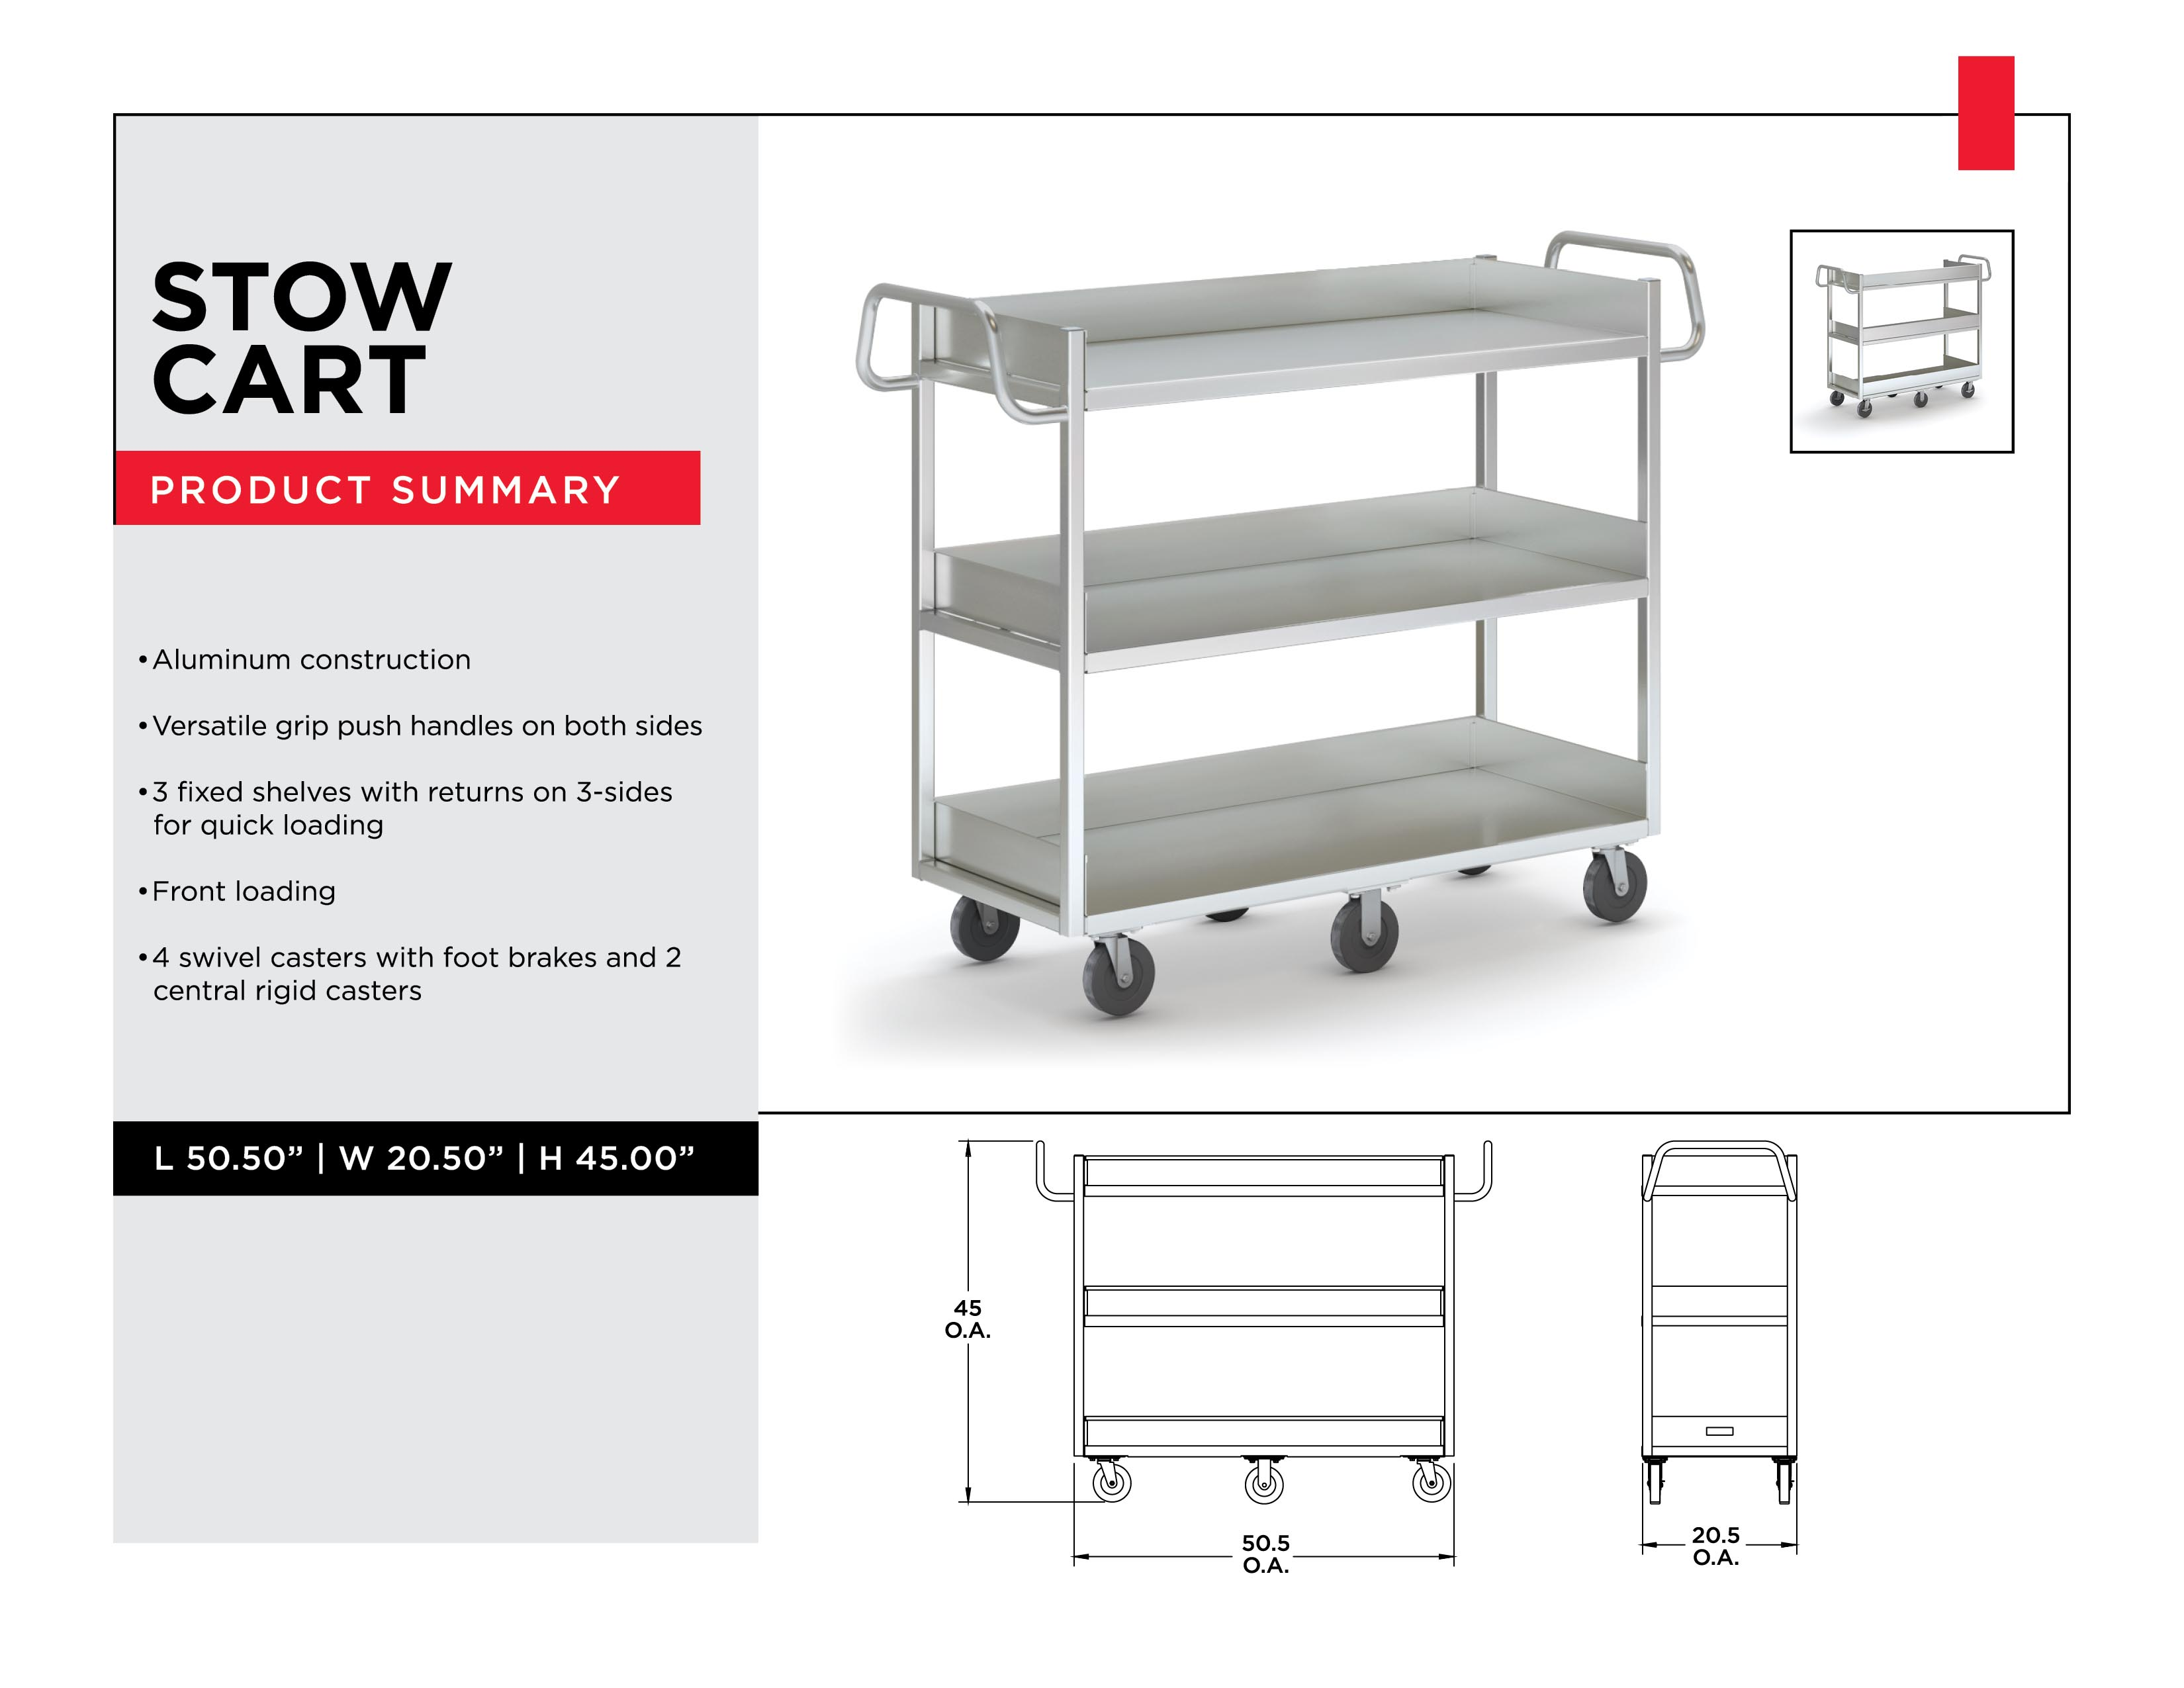 Retail Inventory Management: Stow Cart